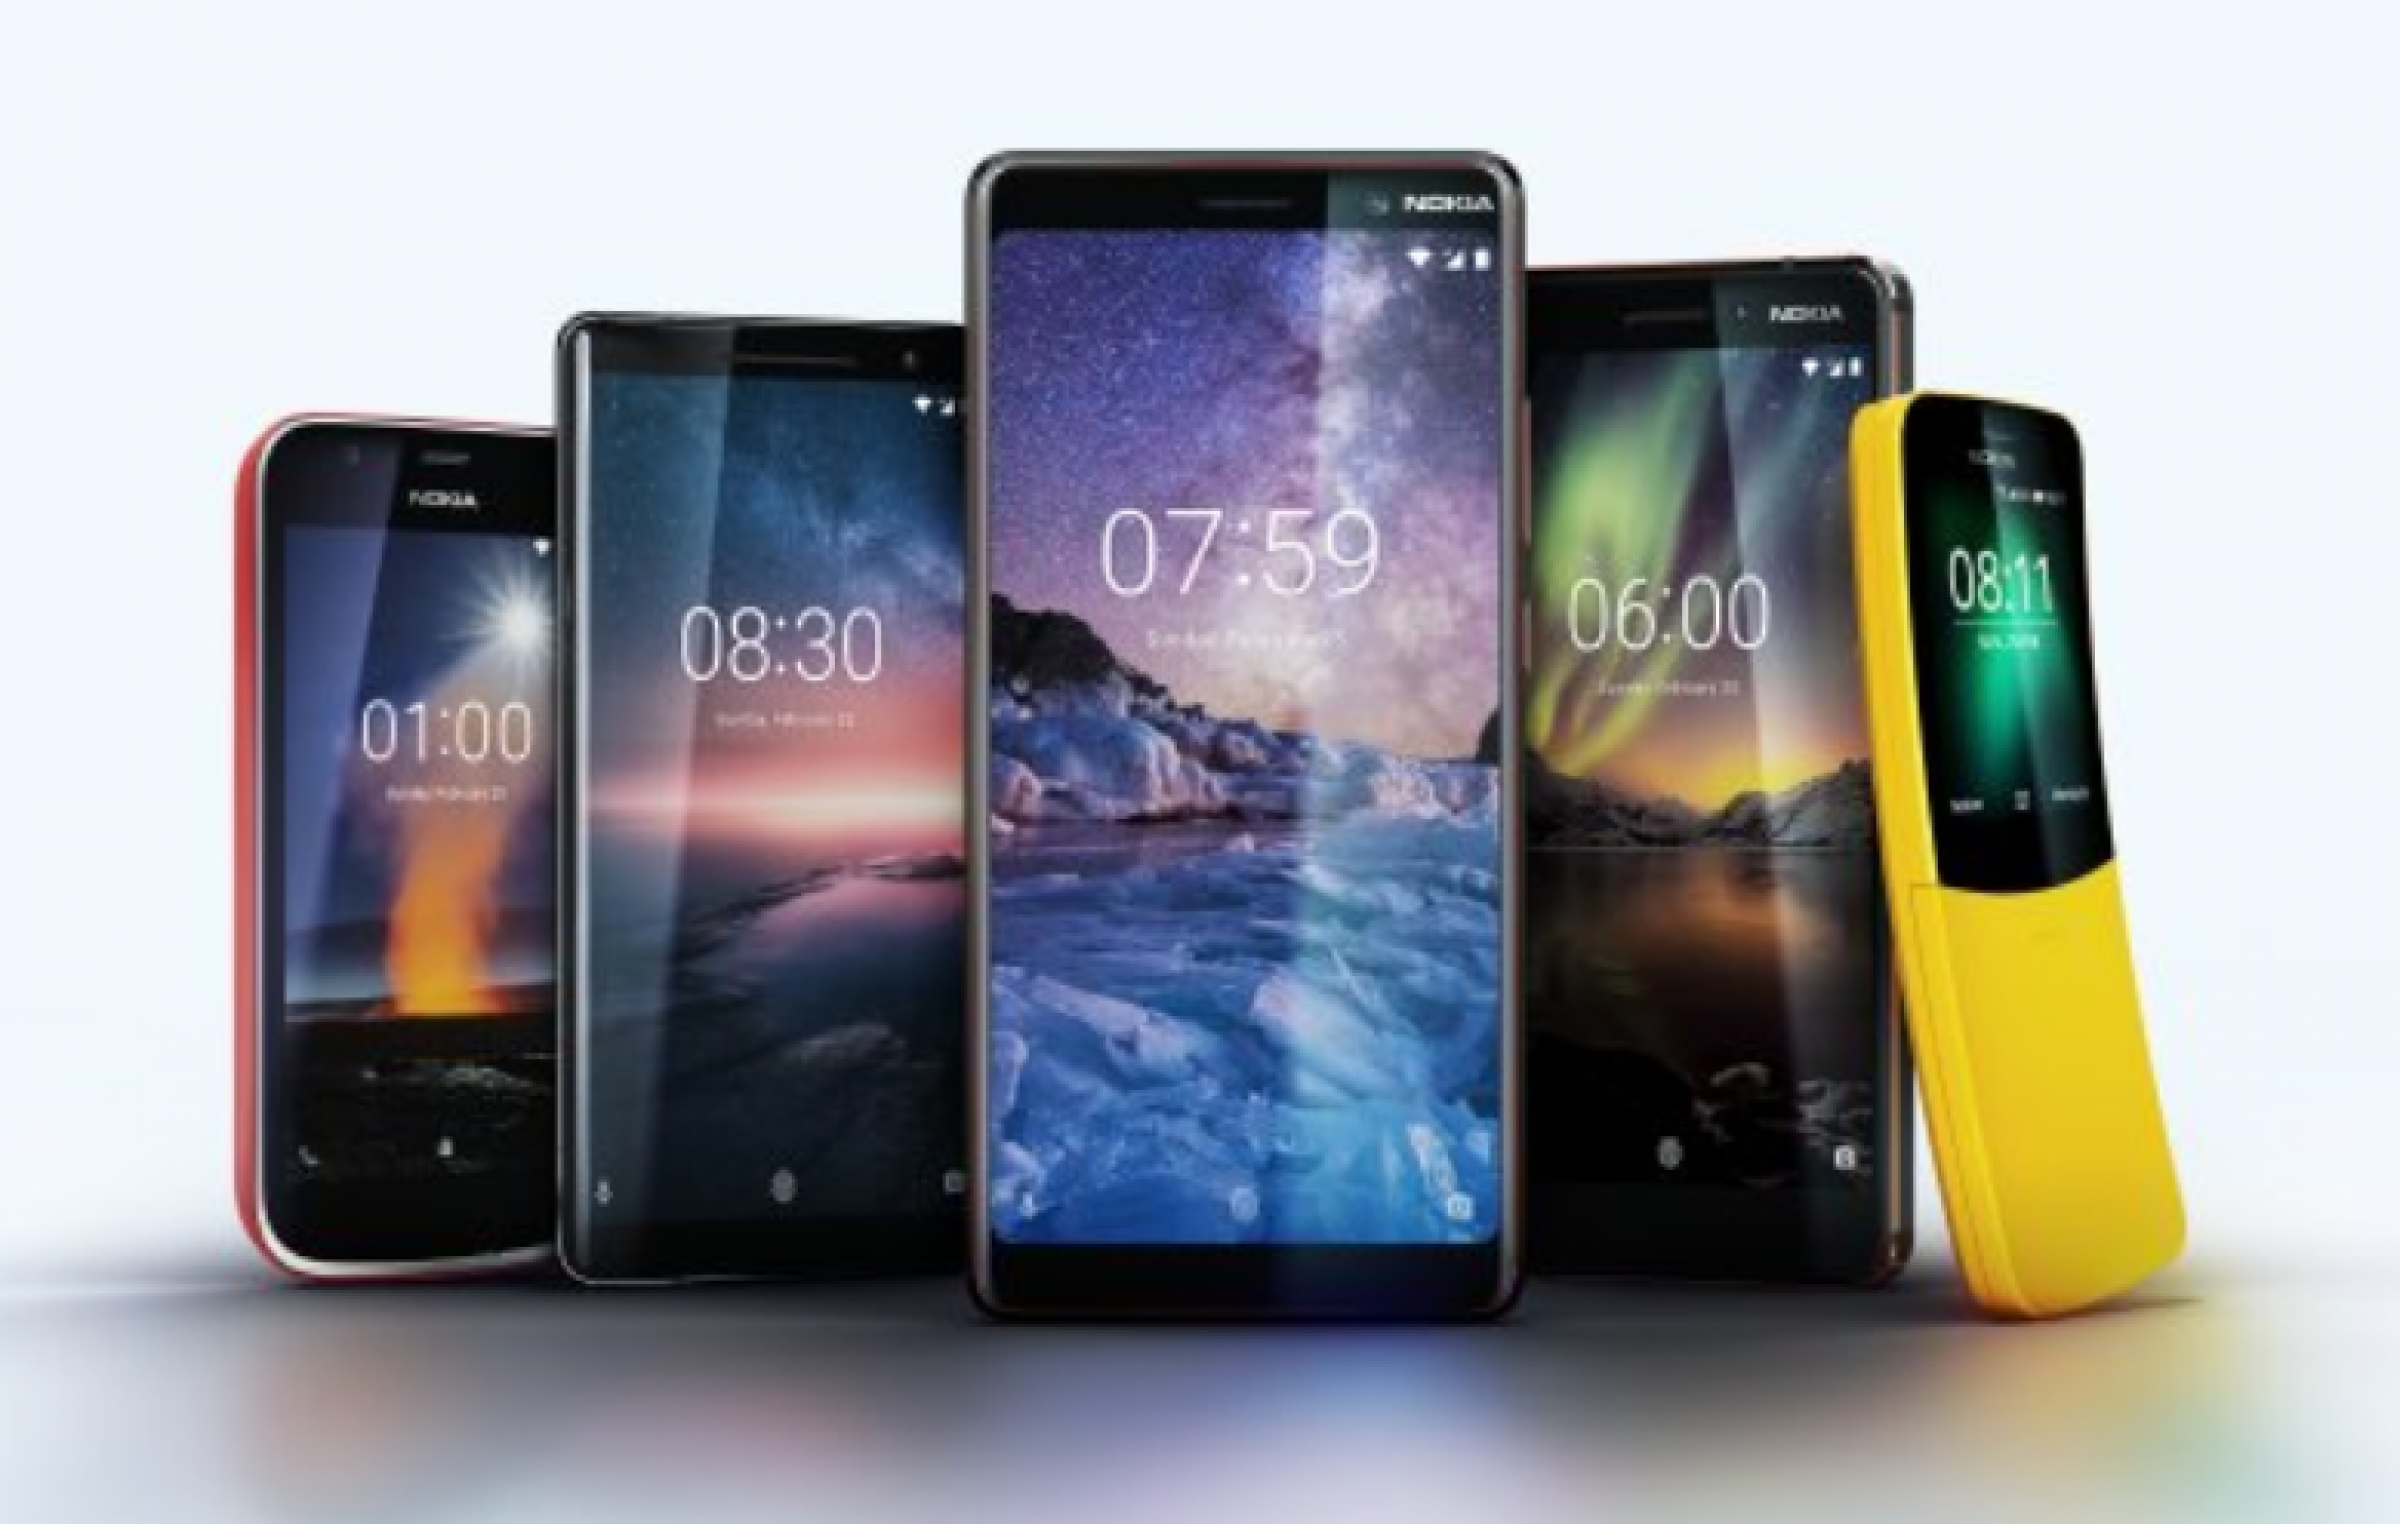 Nokia flash sale